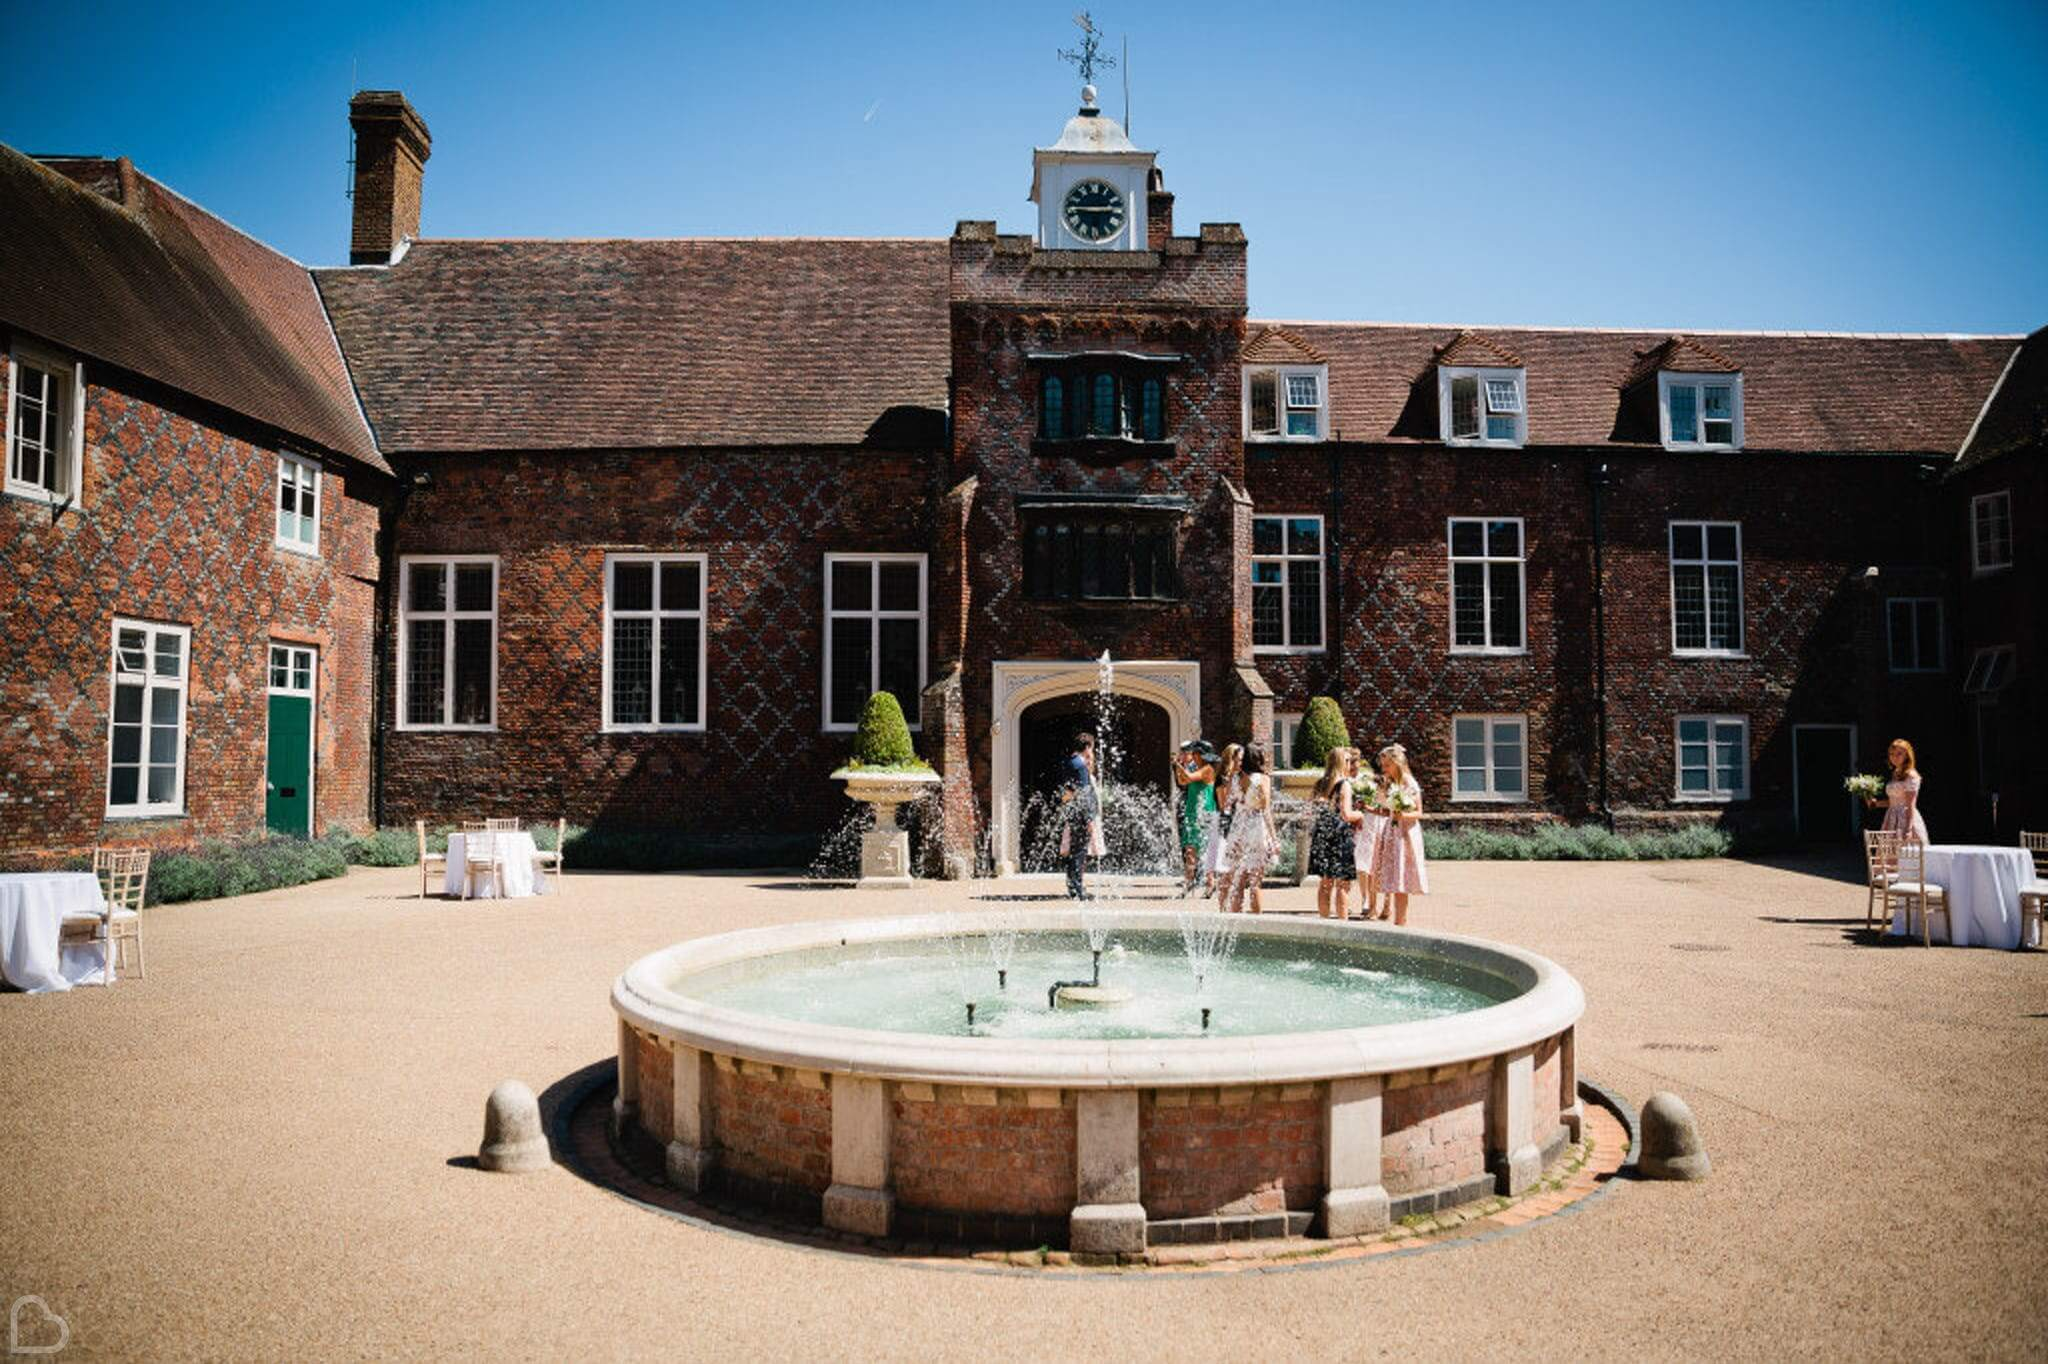 fulham palace fountain outside on a sunny day